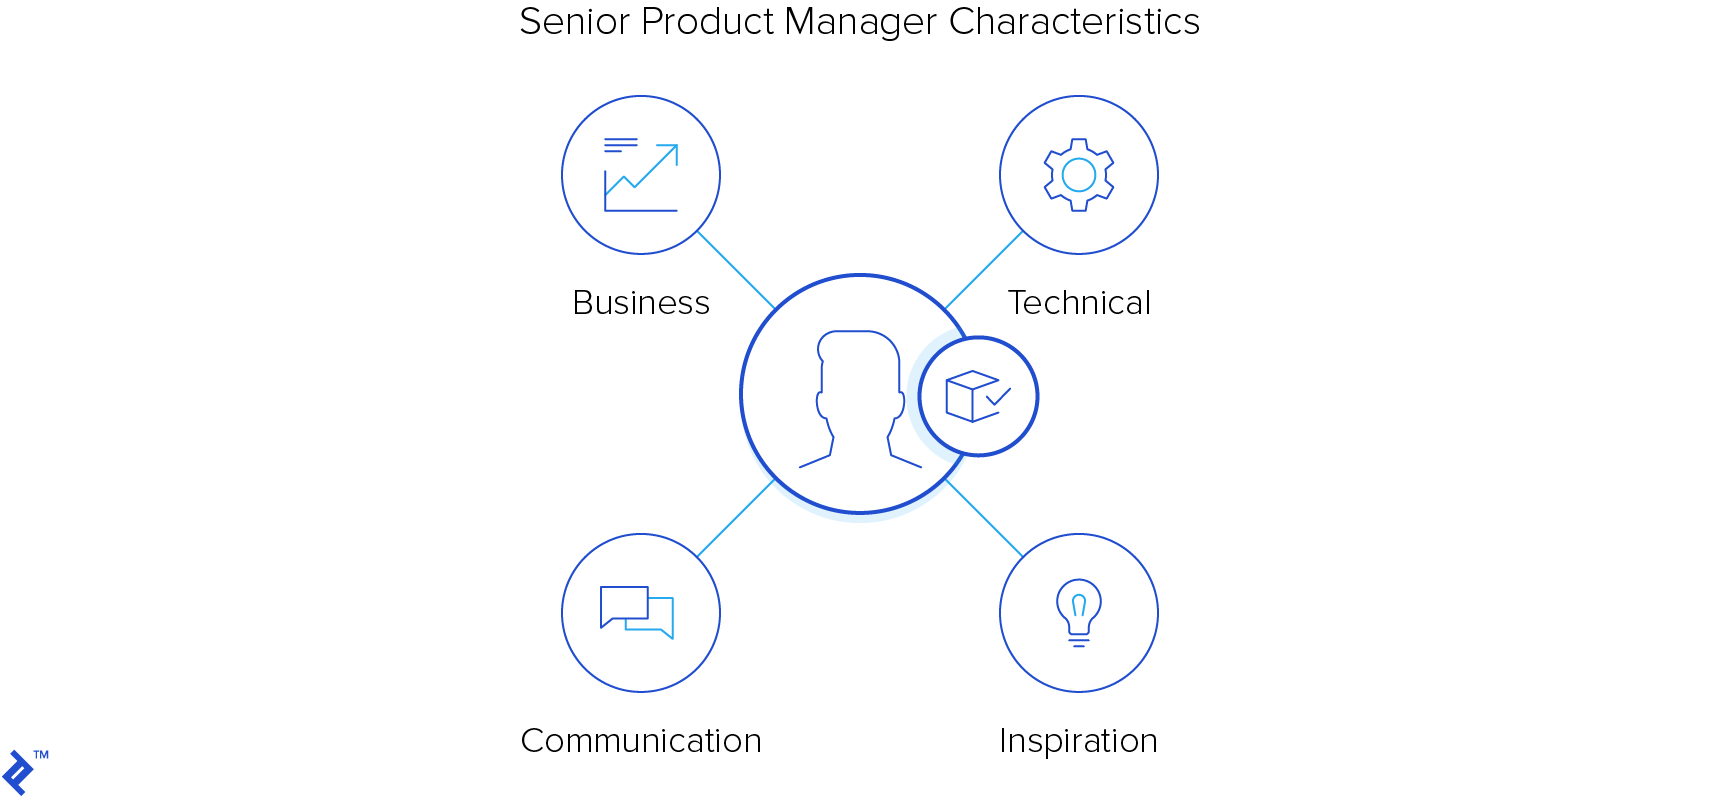 Senior product manager characteristics